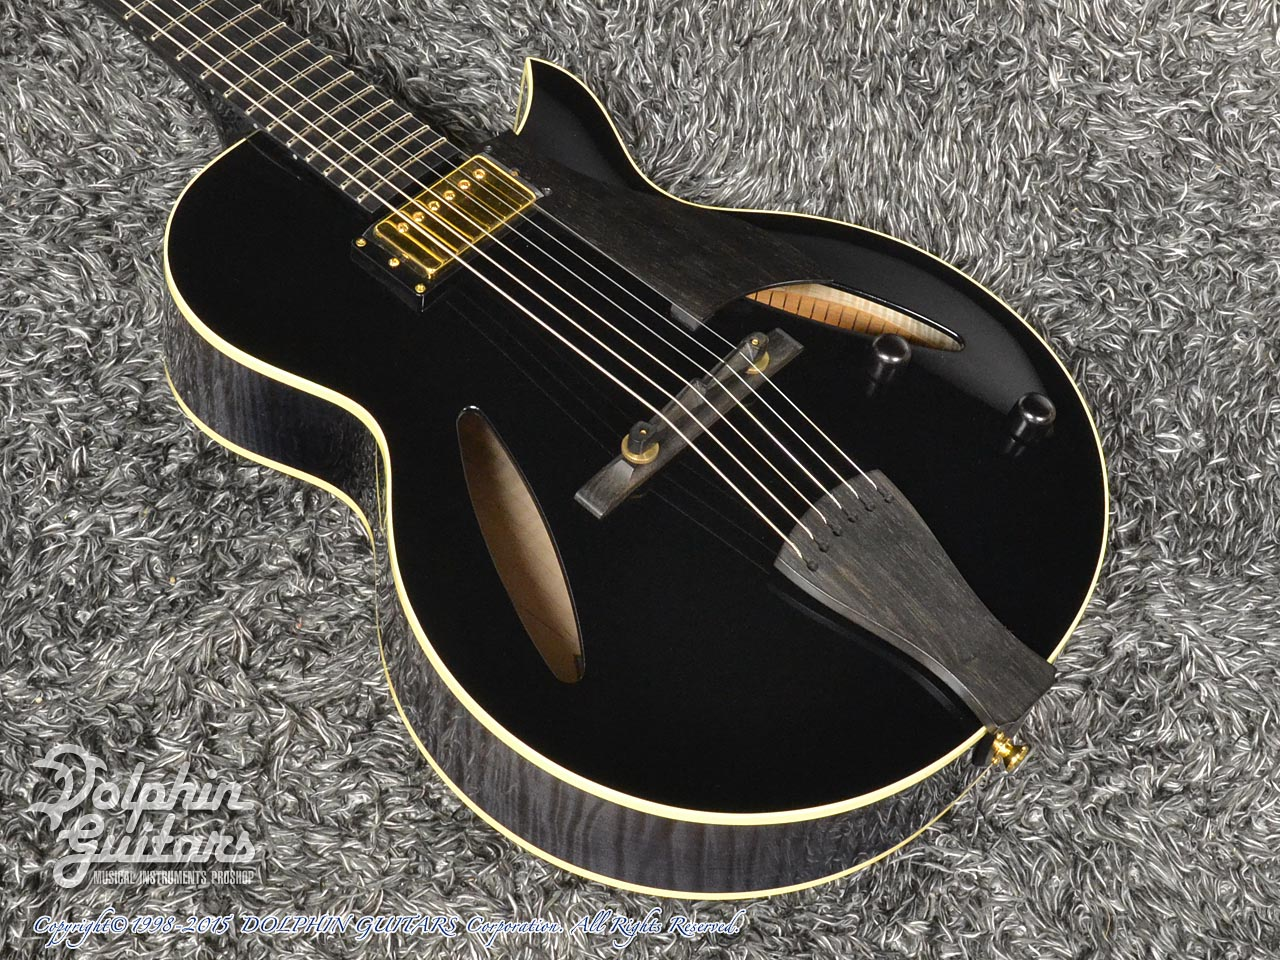 SAITO GUITARS: M35SMM (Trans Black) (1)